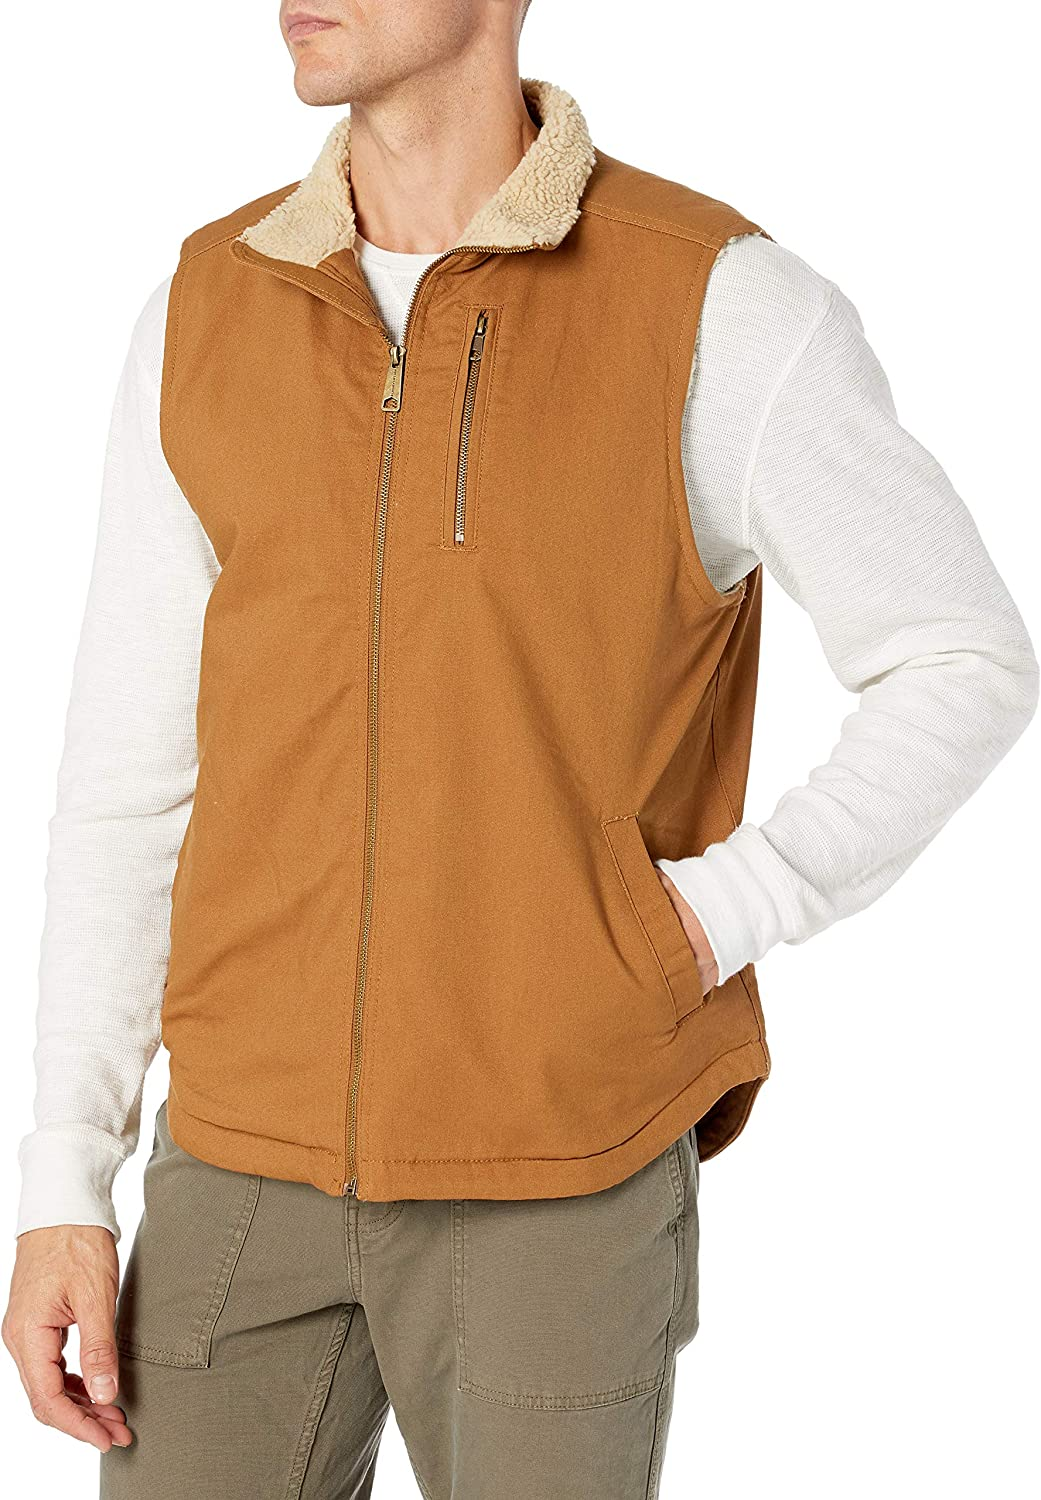 Wells Lamont Men's Sherpa Lined Canvas Vest with Zip Utility Pocket